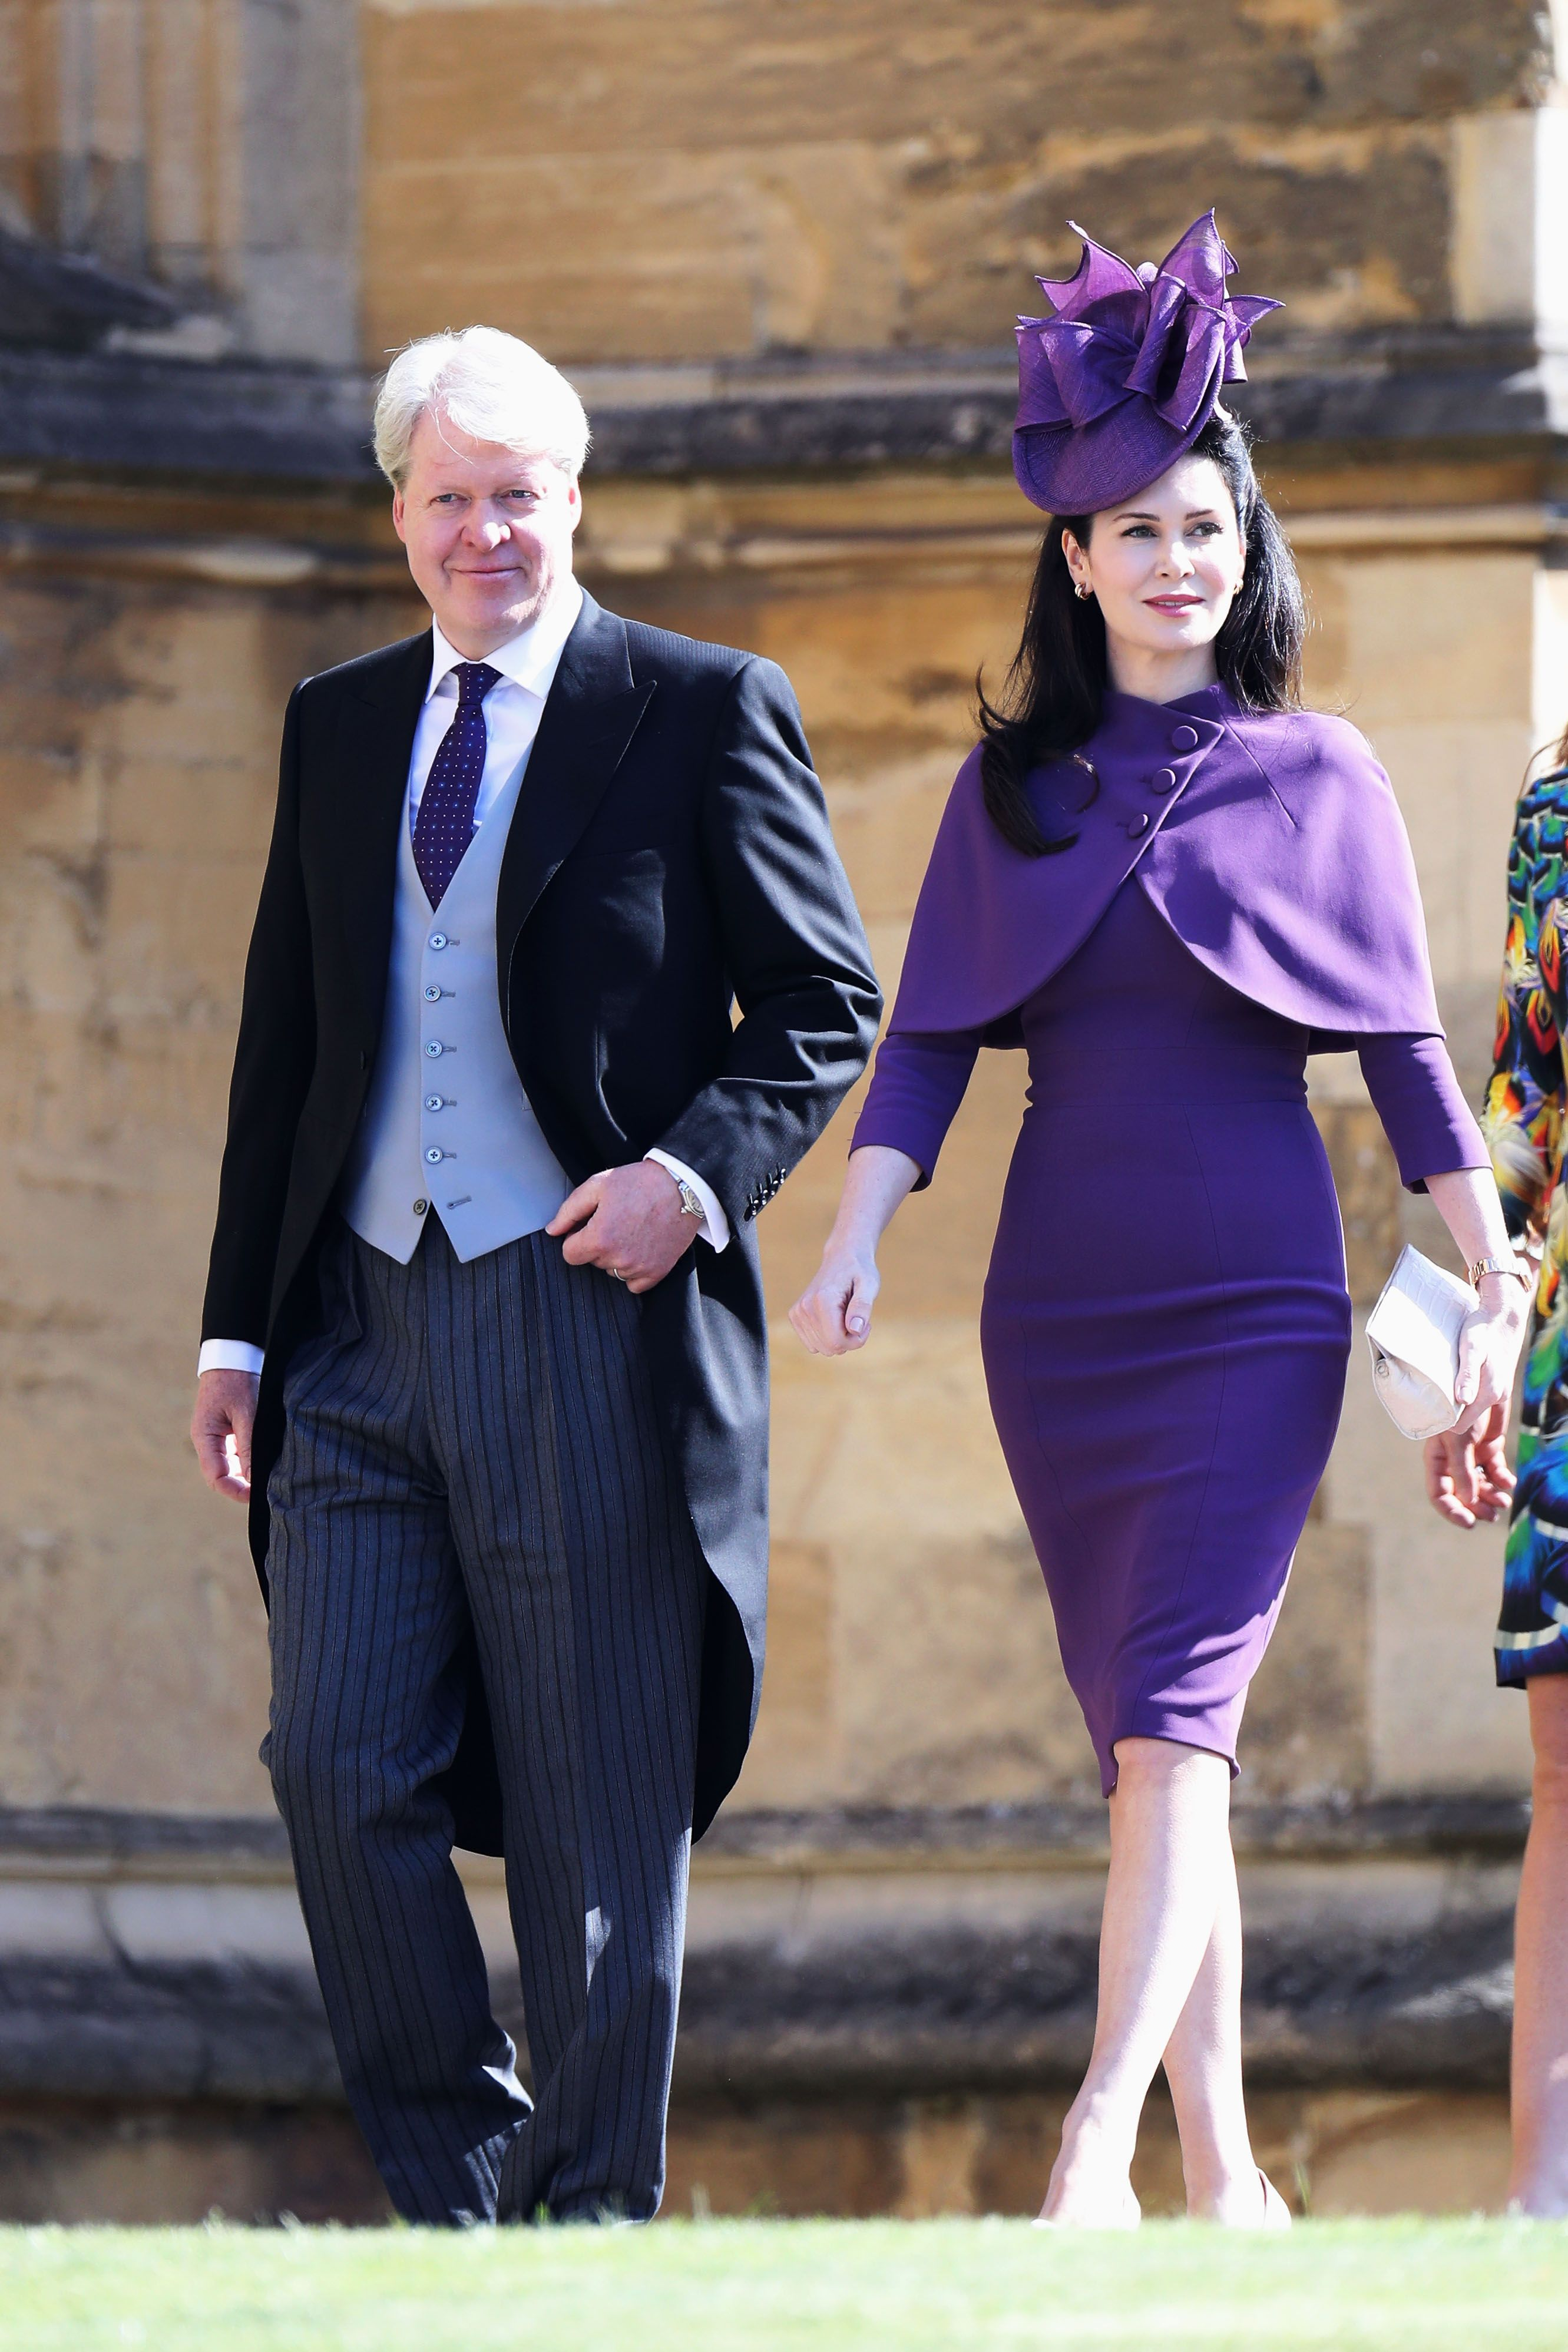 Princess Diana's brother Charles Spencer wears a traditional morning suit. Karen Spencer is dressed in a royal purple capelet and form-fitting knee-length dress.